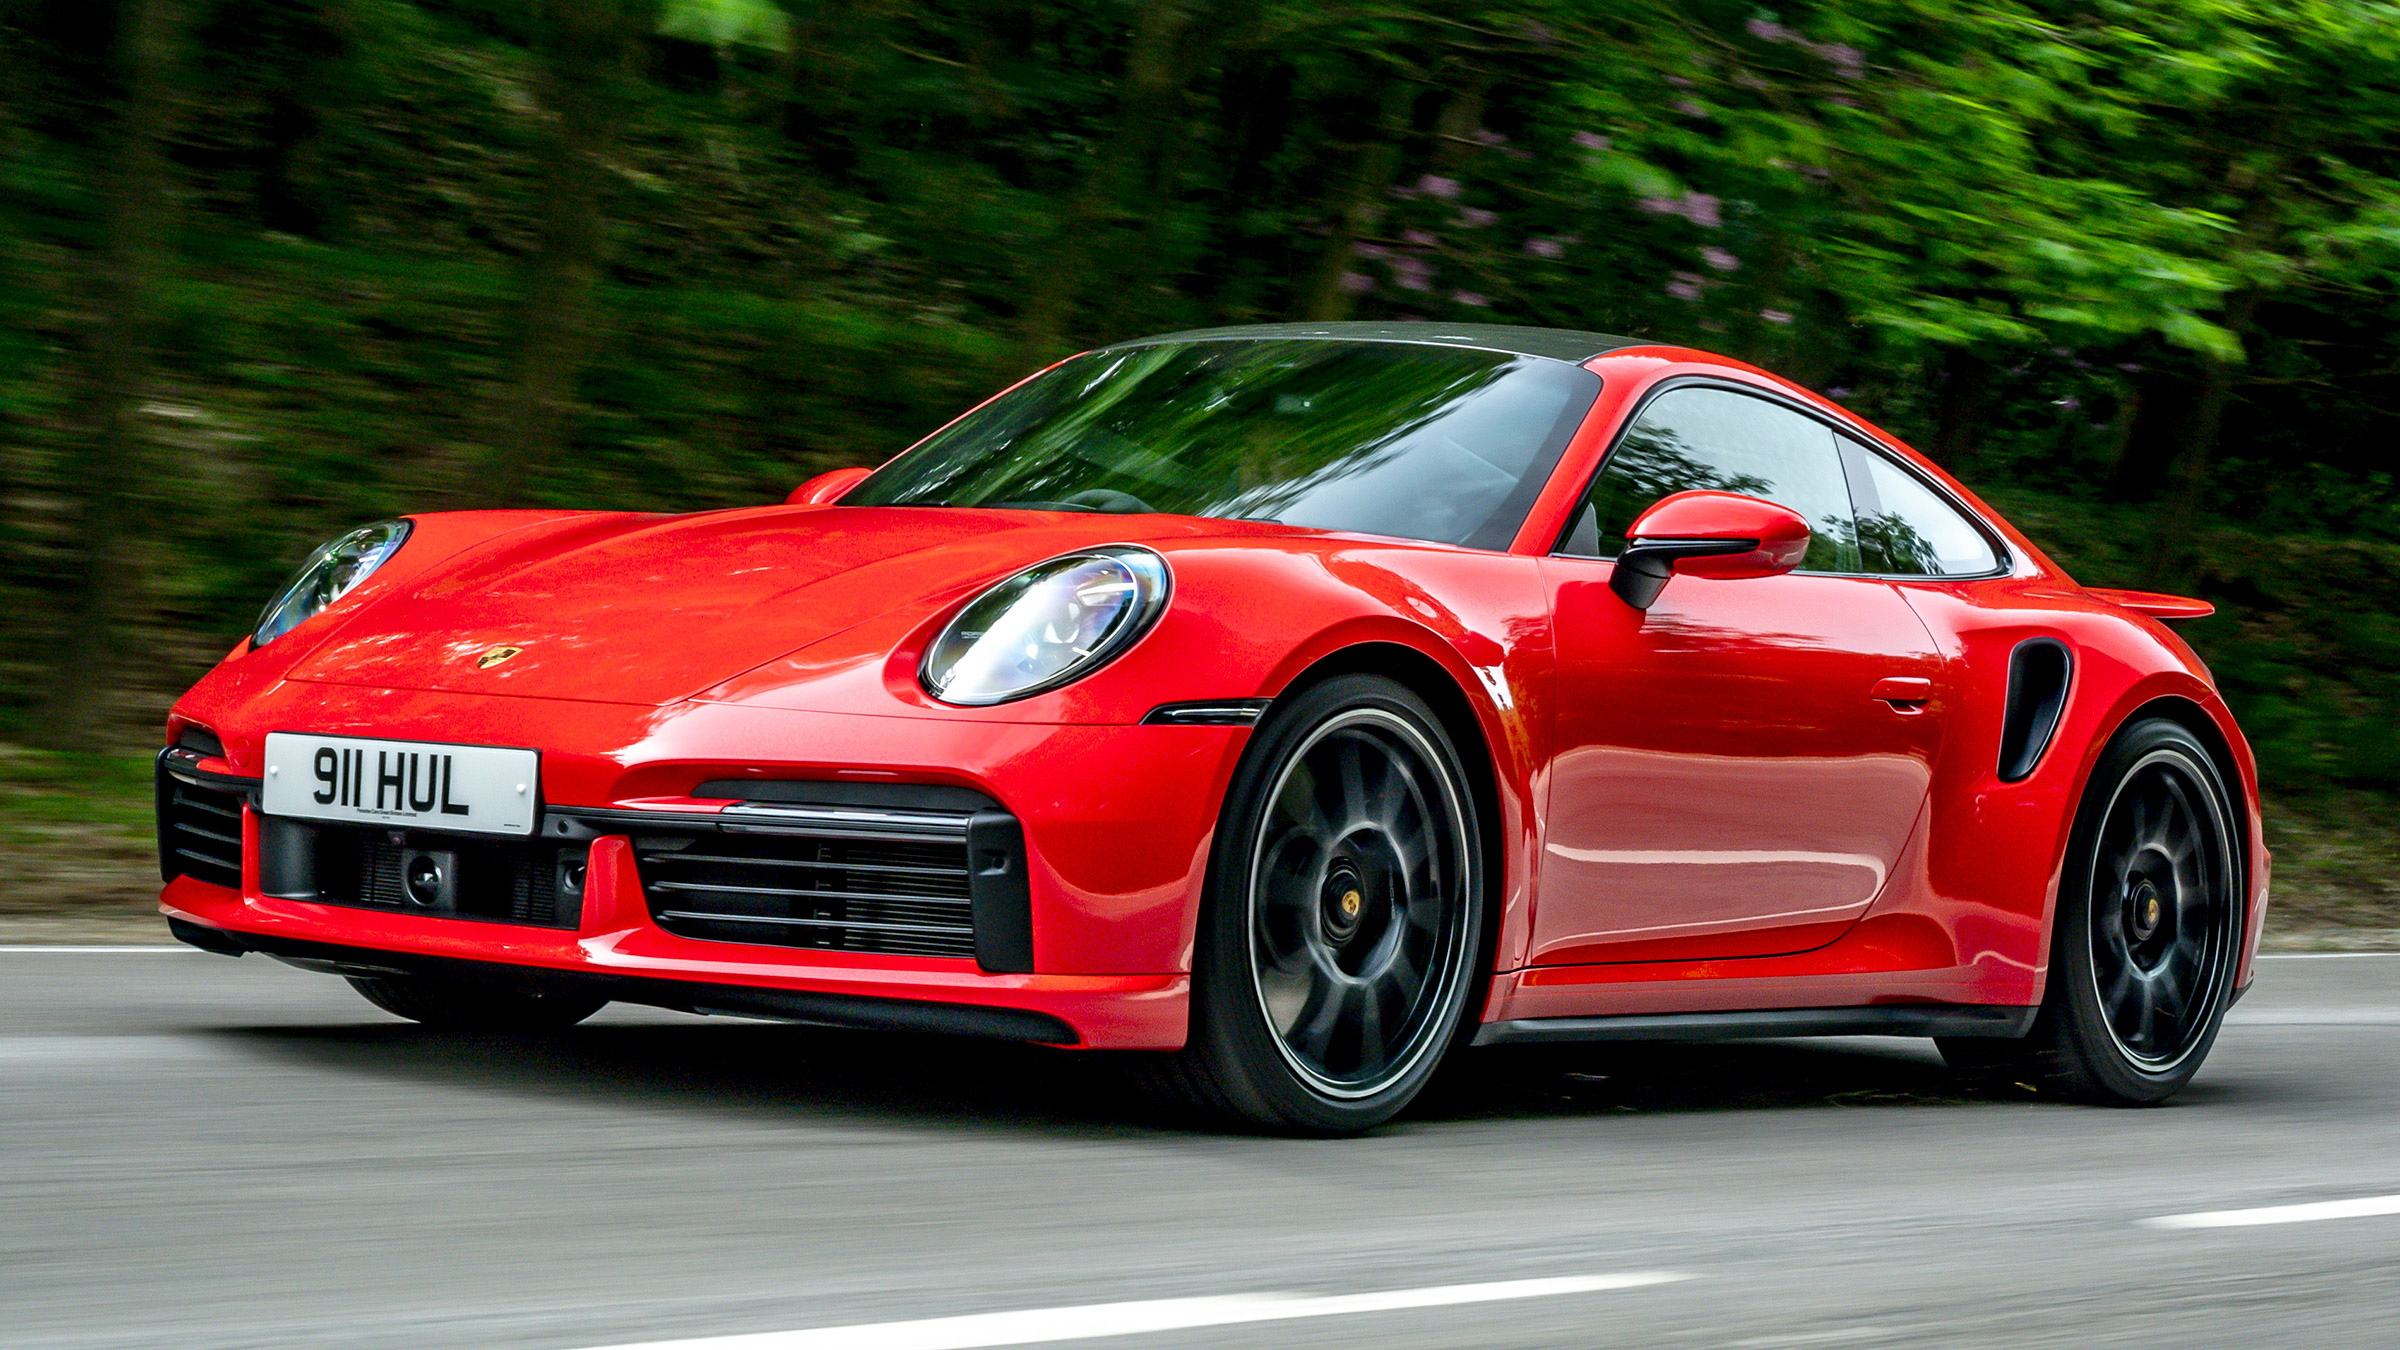 Best Jeep Accessories >> New Porsche 911 Turbo S 2020 review | Auto Express